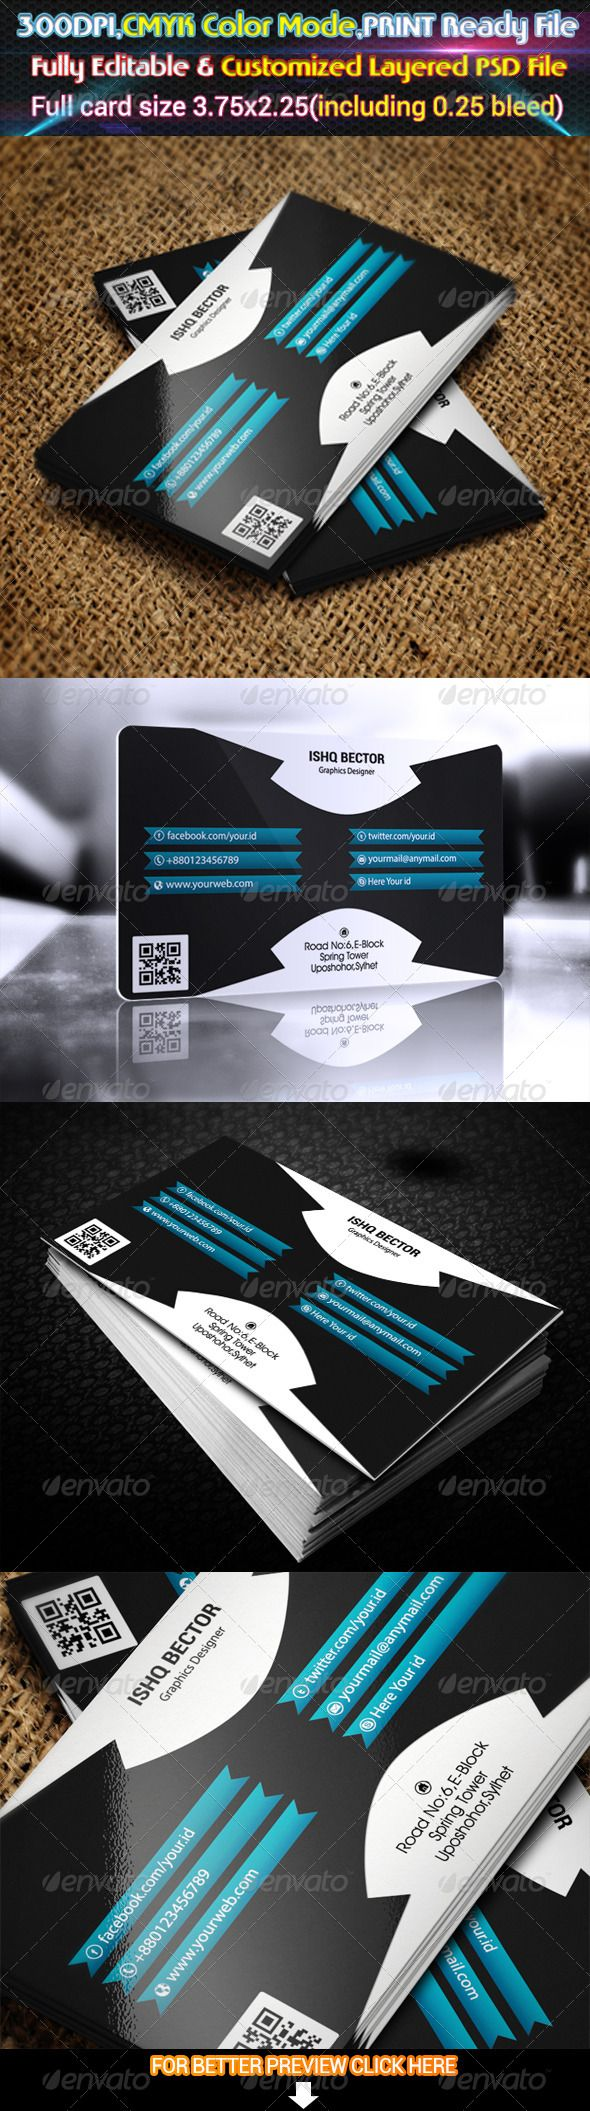 Corporate business card pinterest corporate business card1300dpi2yk color mode 3int ready reheart Image collections